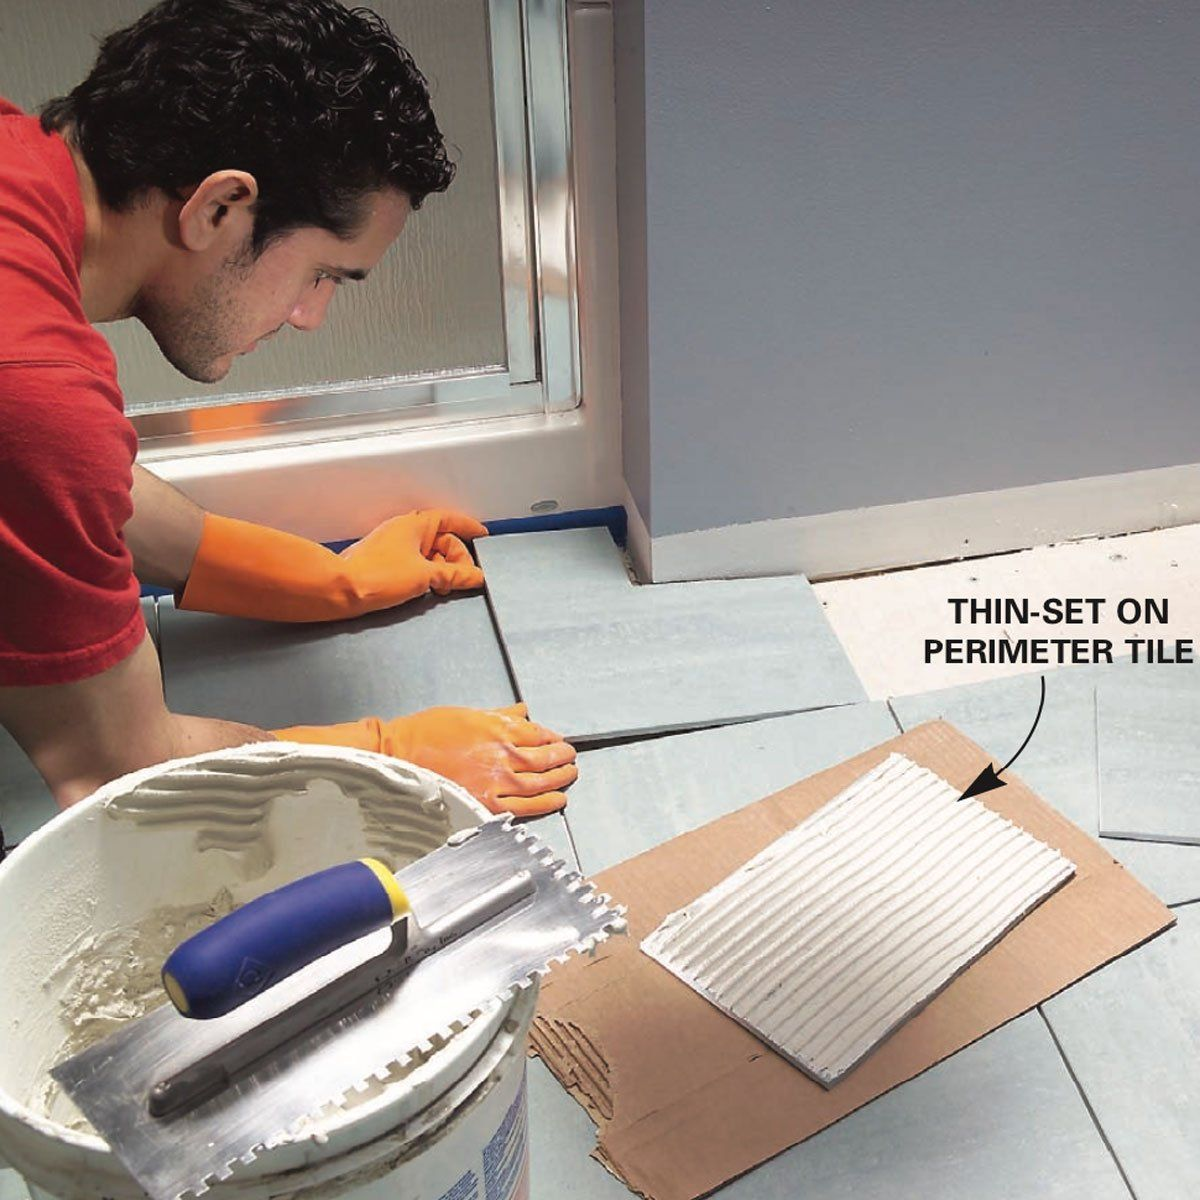 How To Install Ceramic Tile Floor In The Bathroom In 2020 Ceramic Floor Tiles Tile Floor Tile Floor Diy